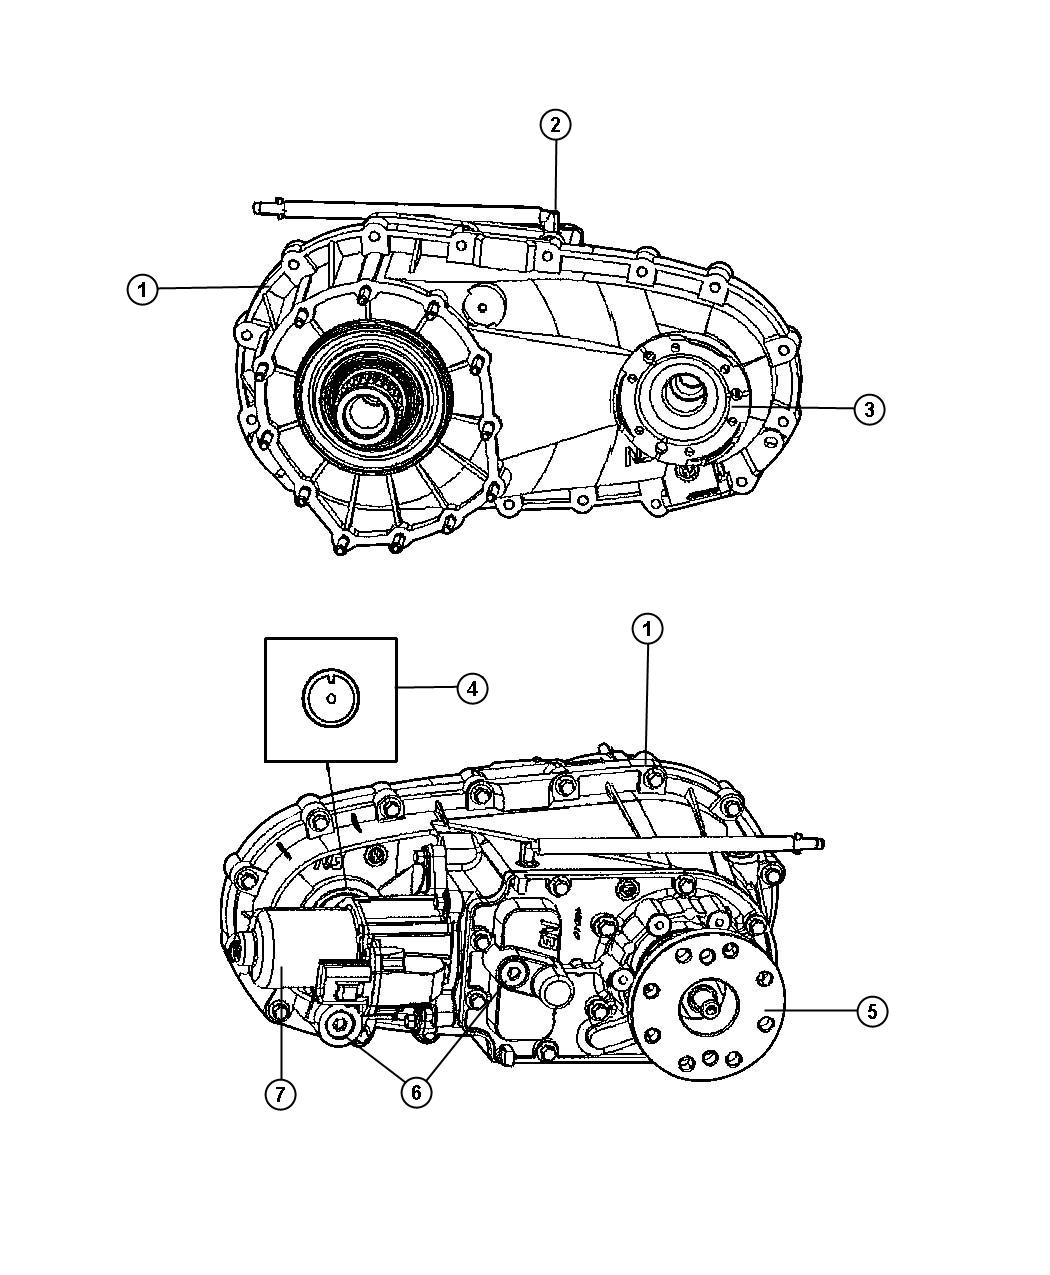 2008 Jeep Grand Cherokee Transfer Case Assembly And